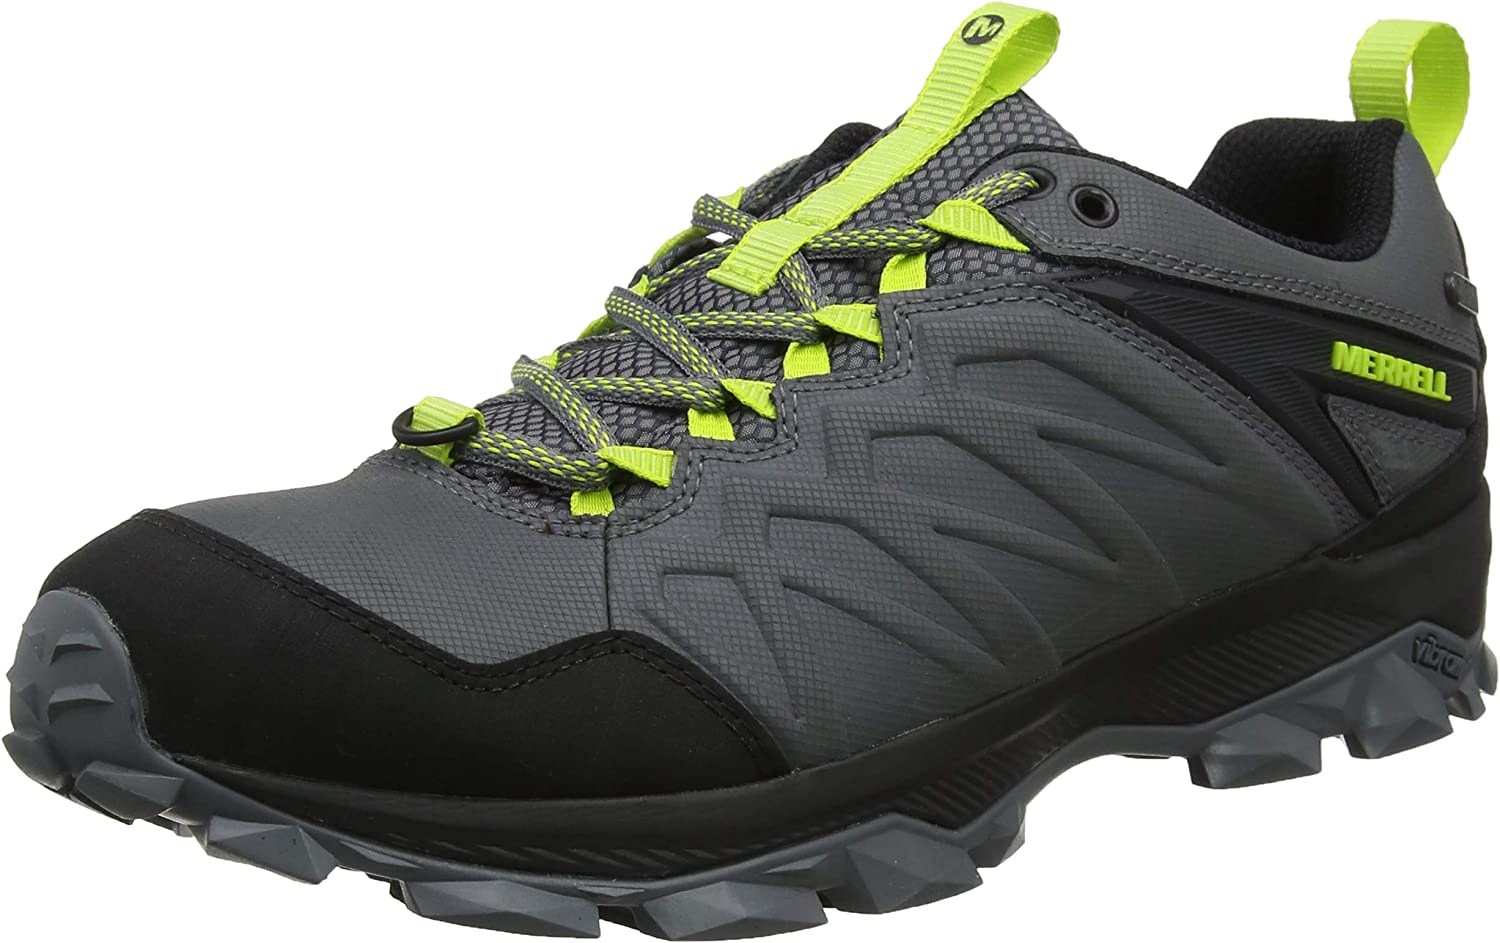 Merrell Men's Thermo Freeze Wp Low Rise Hiking Boots